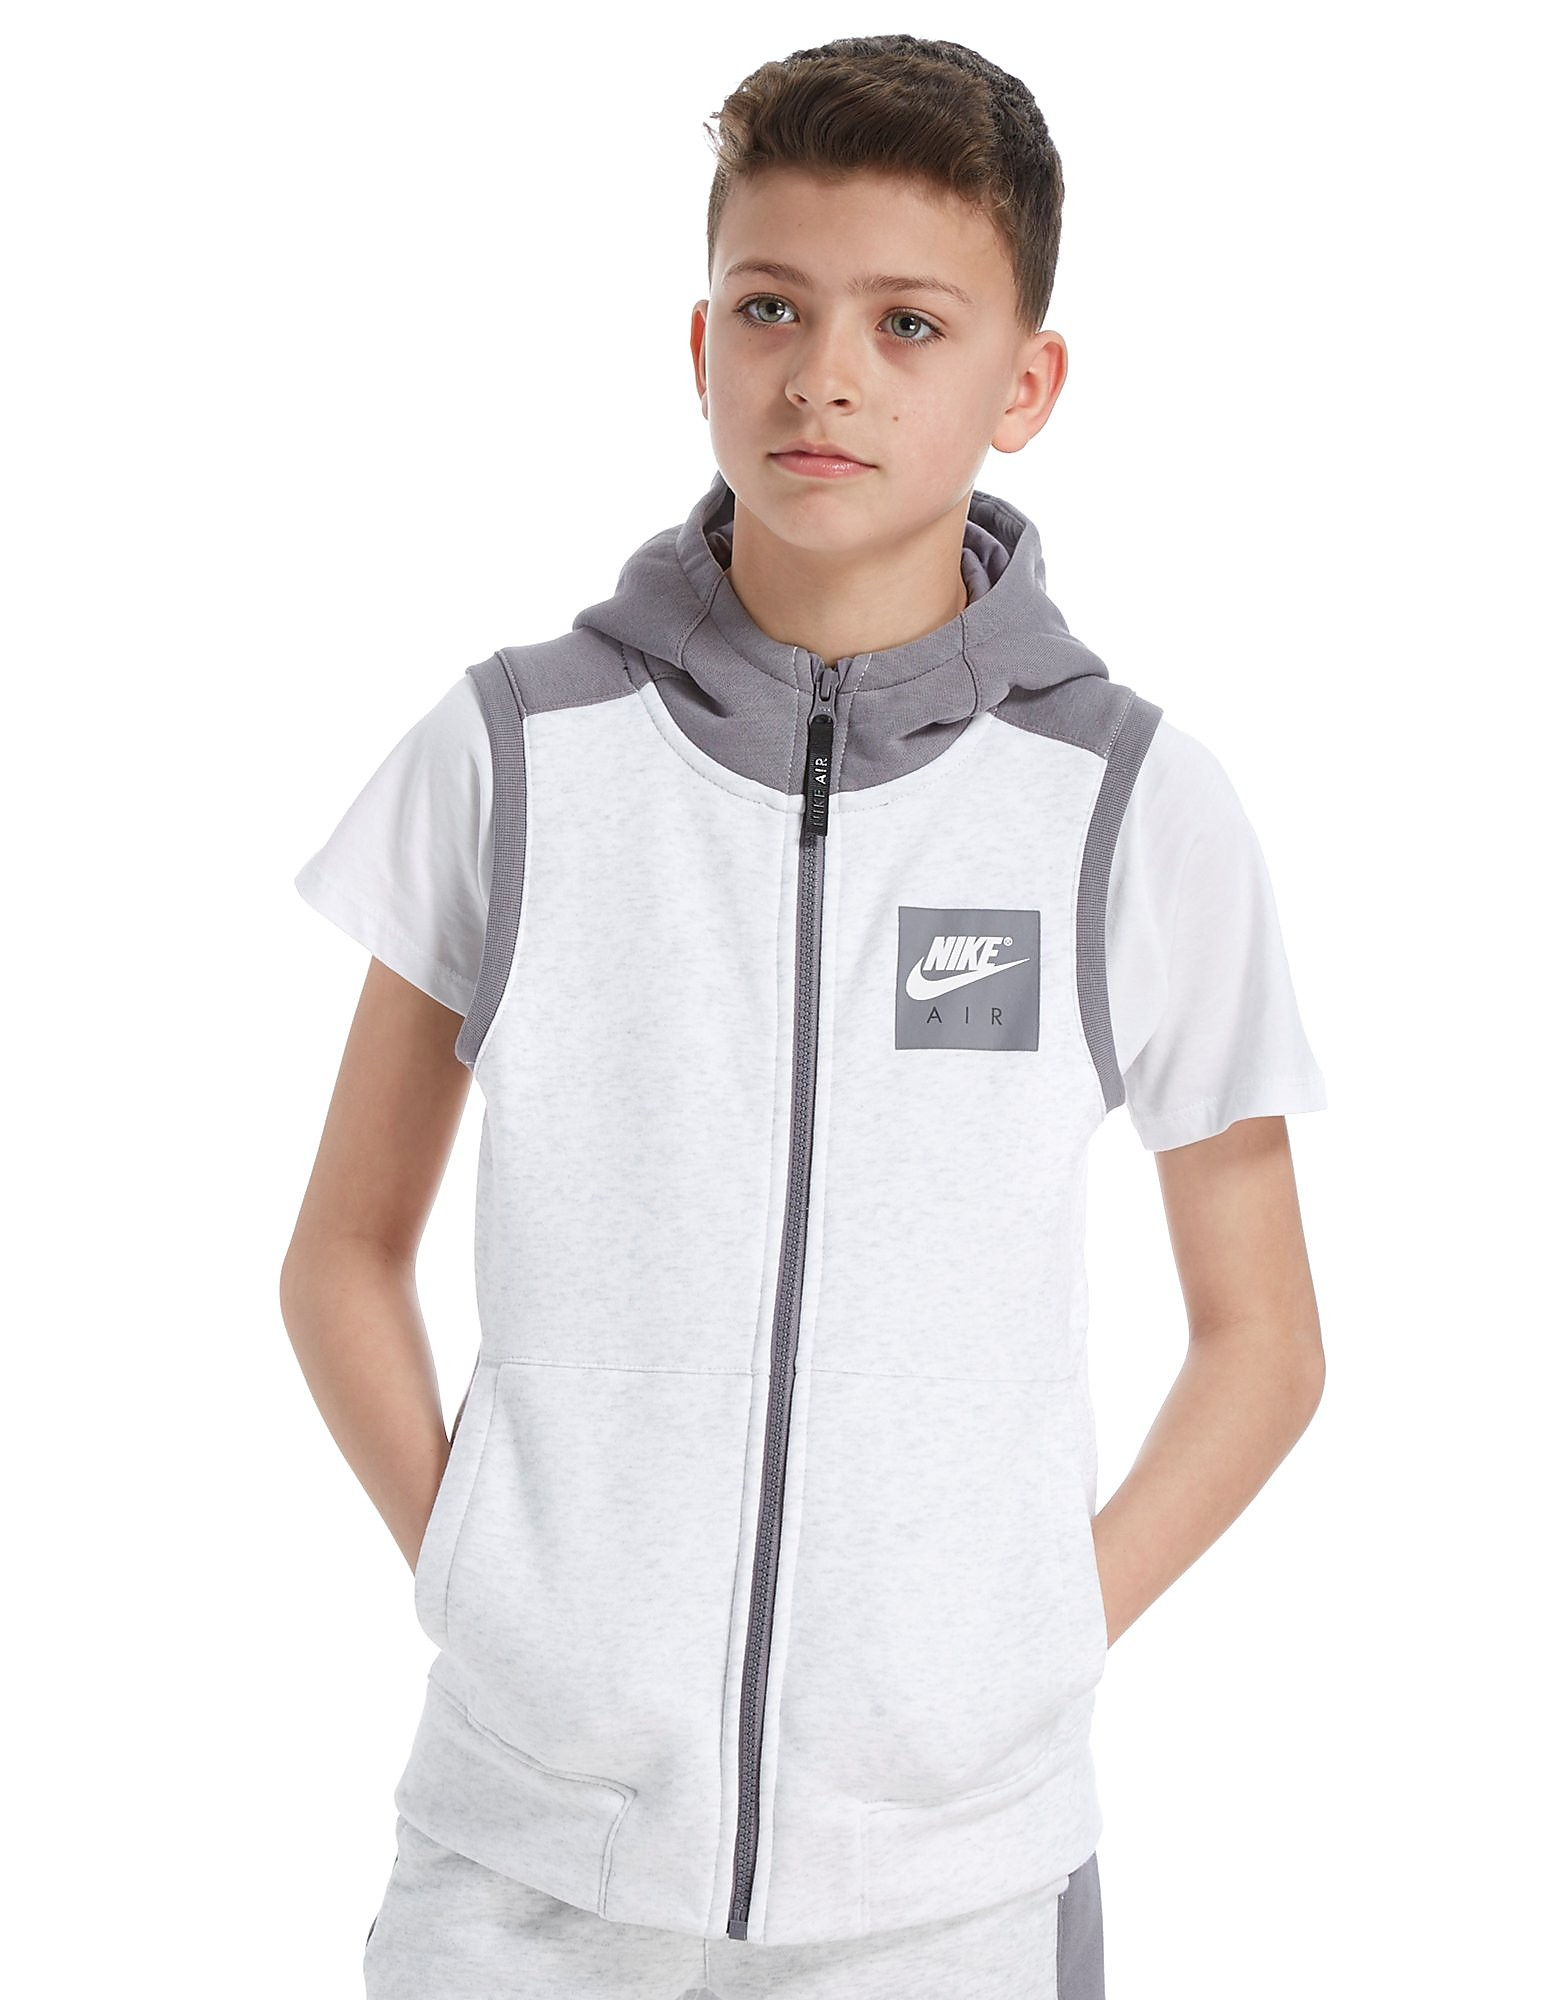 Nike Veste sans manches et à capuche Air Sleeveless Junior